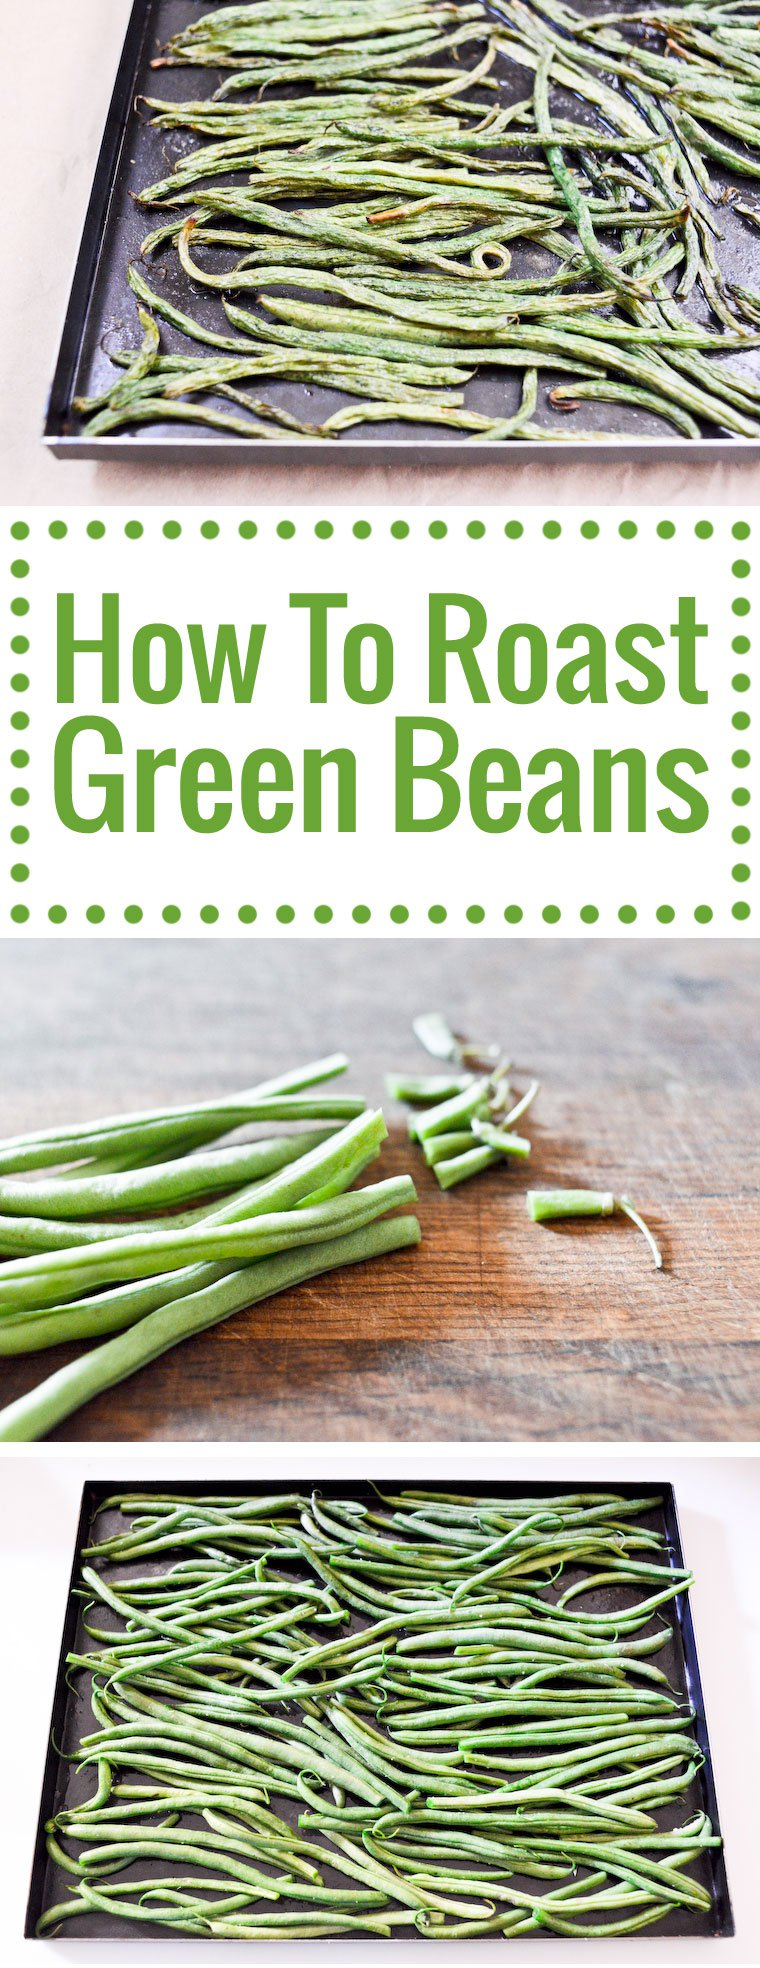 Roasting green beans is a fabulous cooking method, and topping them with shaved bottarga makes for an easy yet impressive appetizer.